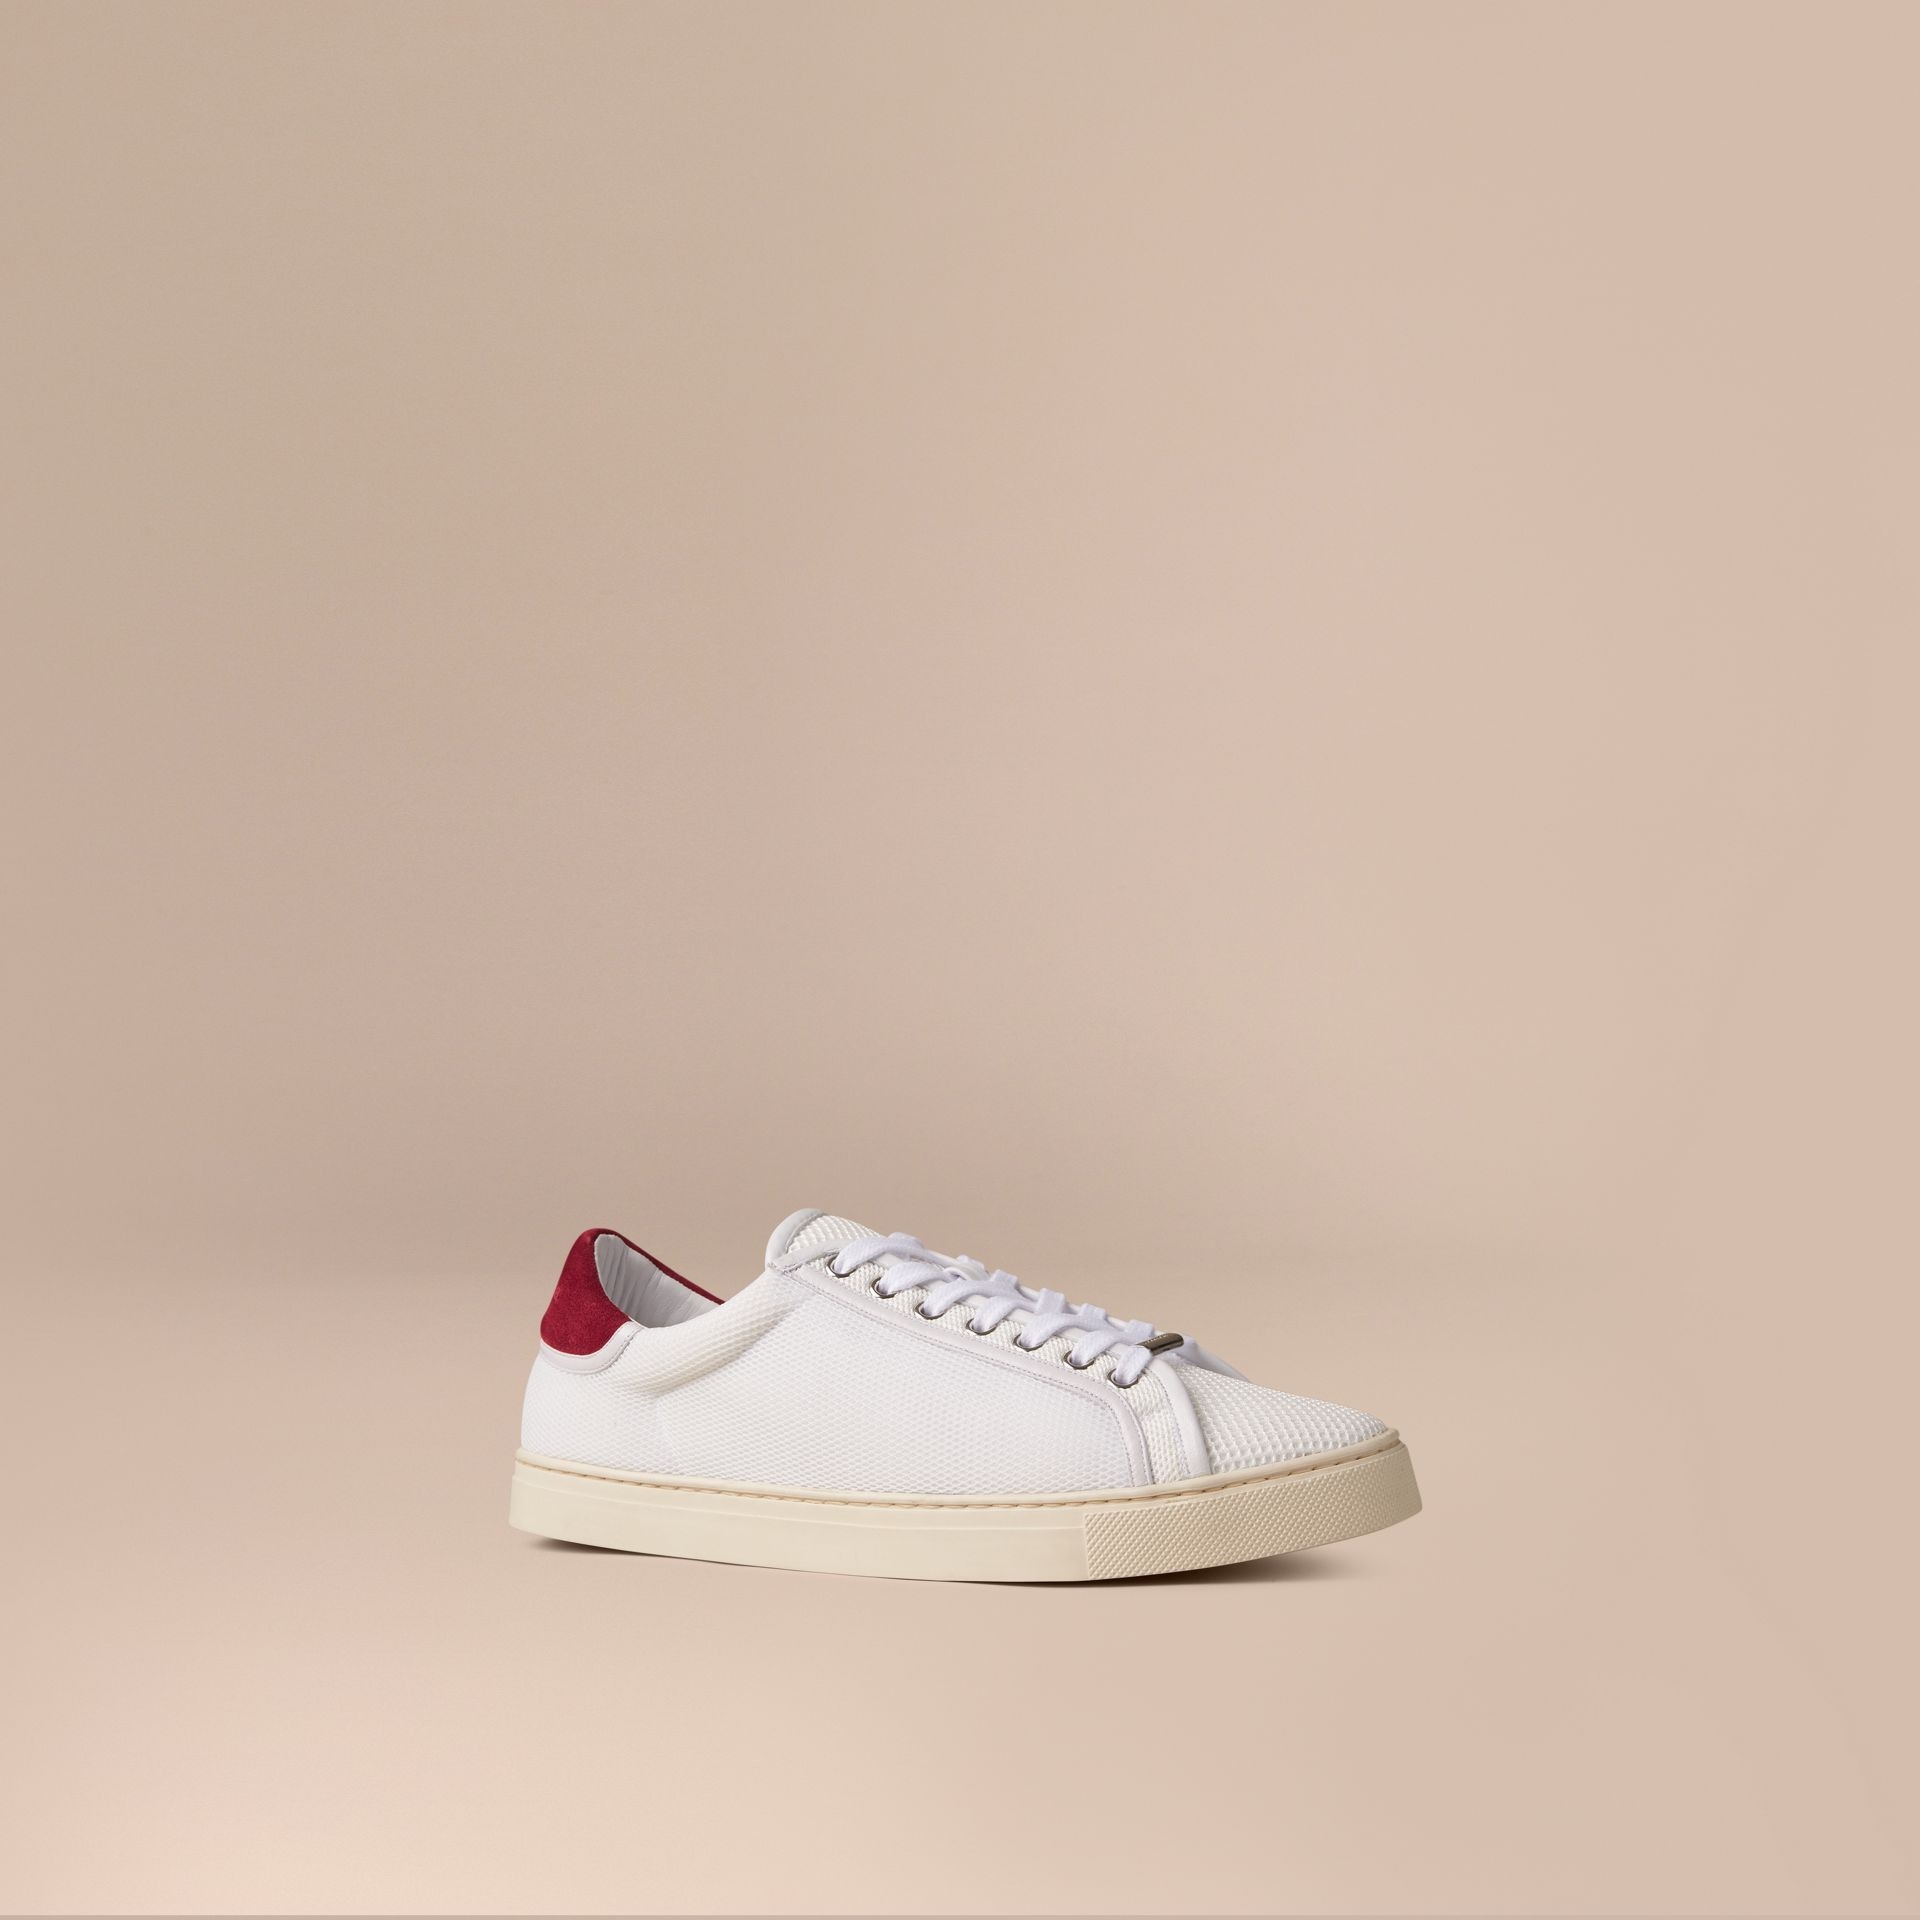 White/bright ruby red Mesh and Leather Trainers White/bright Ruby Red - gallery image 1